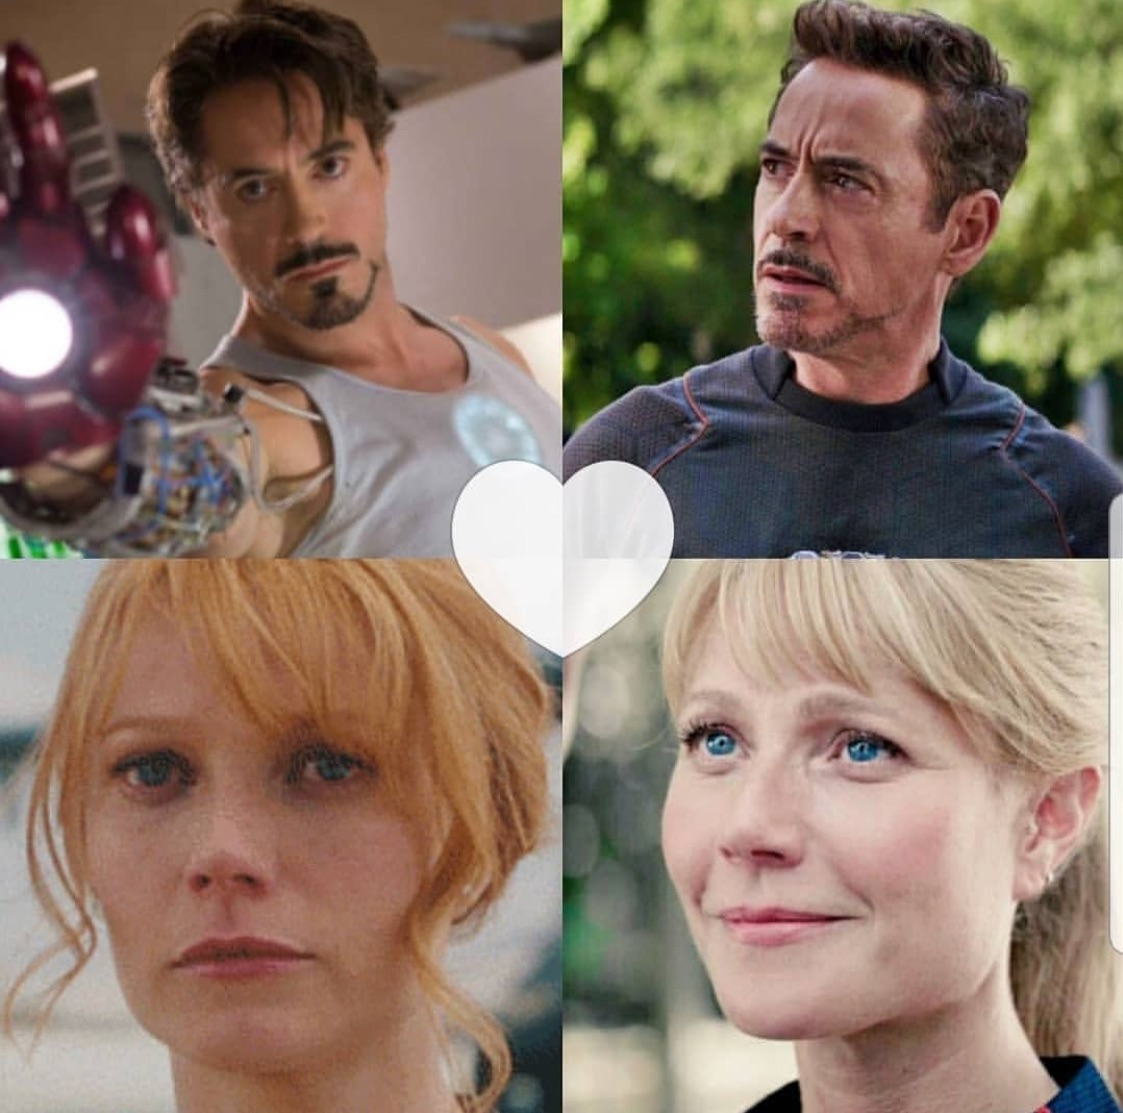 marvel cinematic universe, iron man, marvel and love